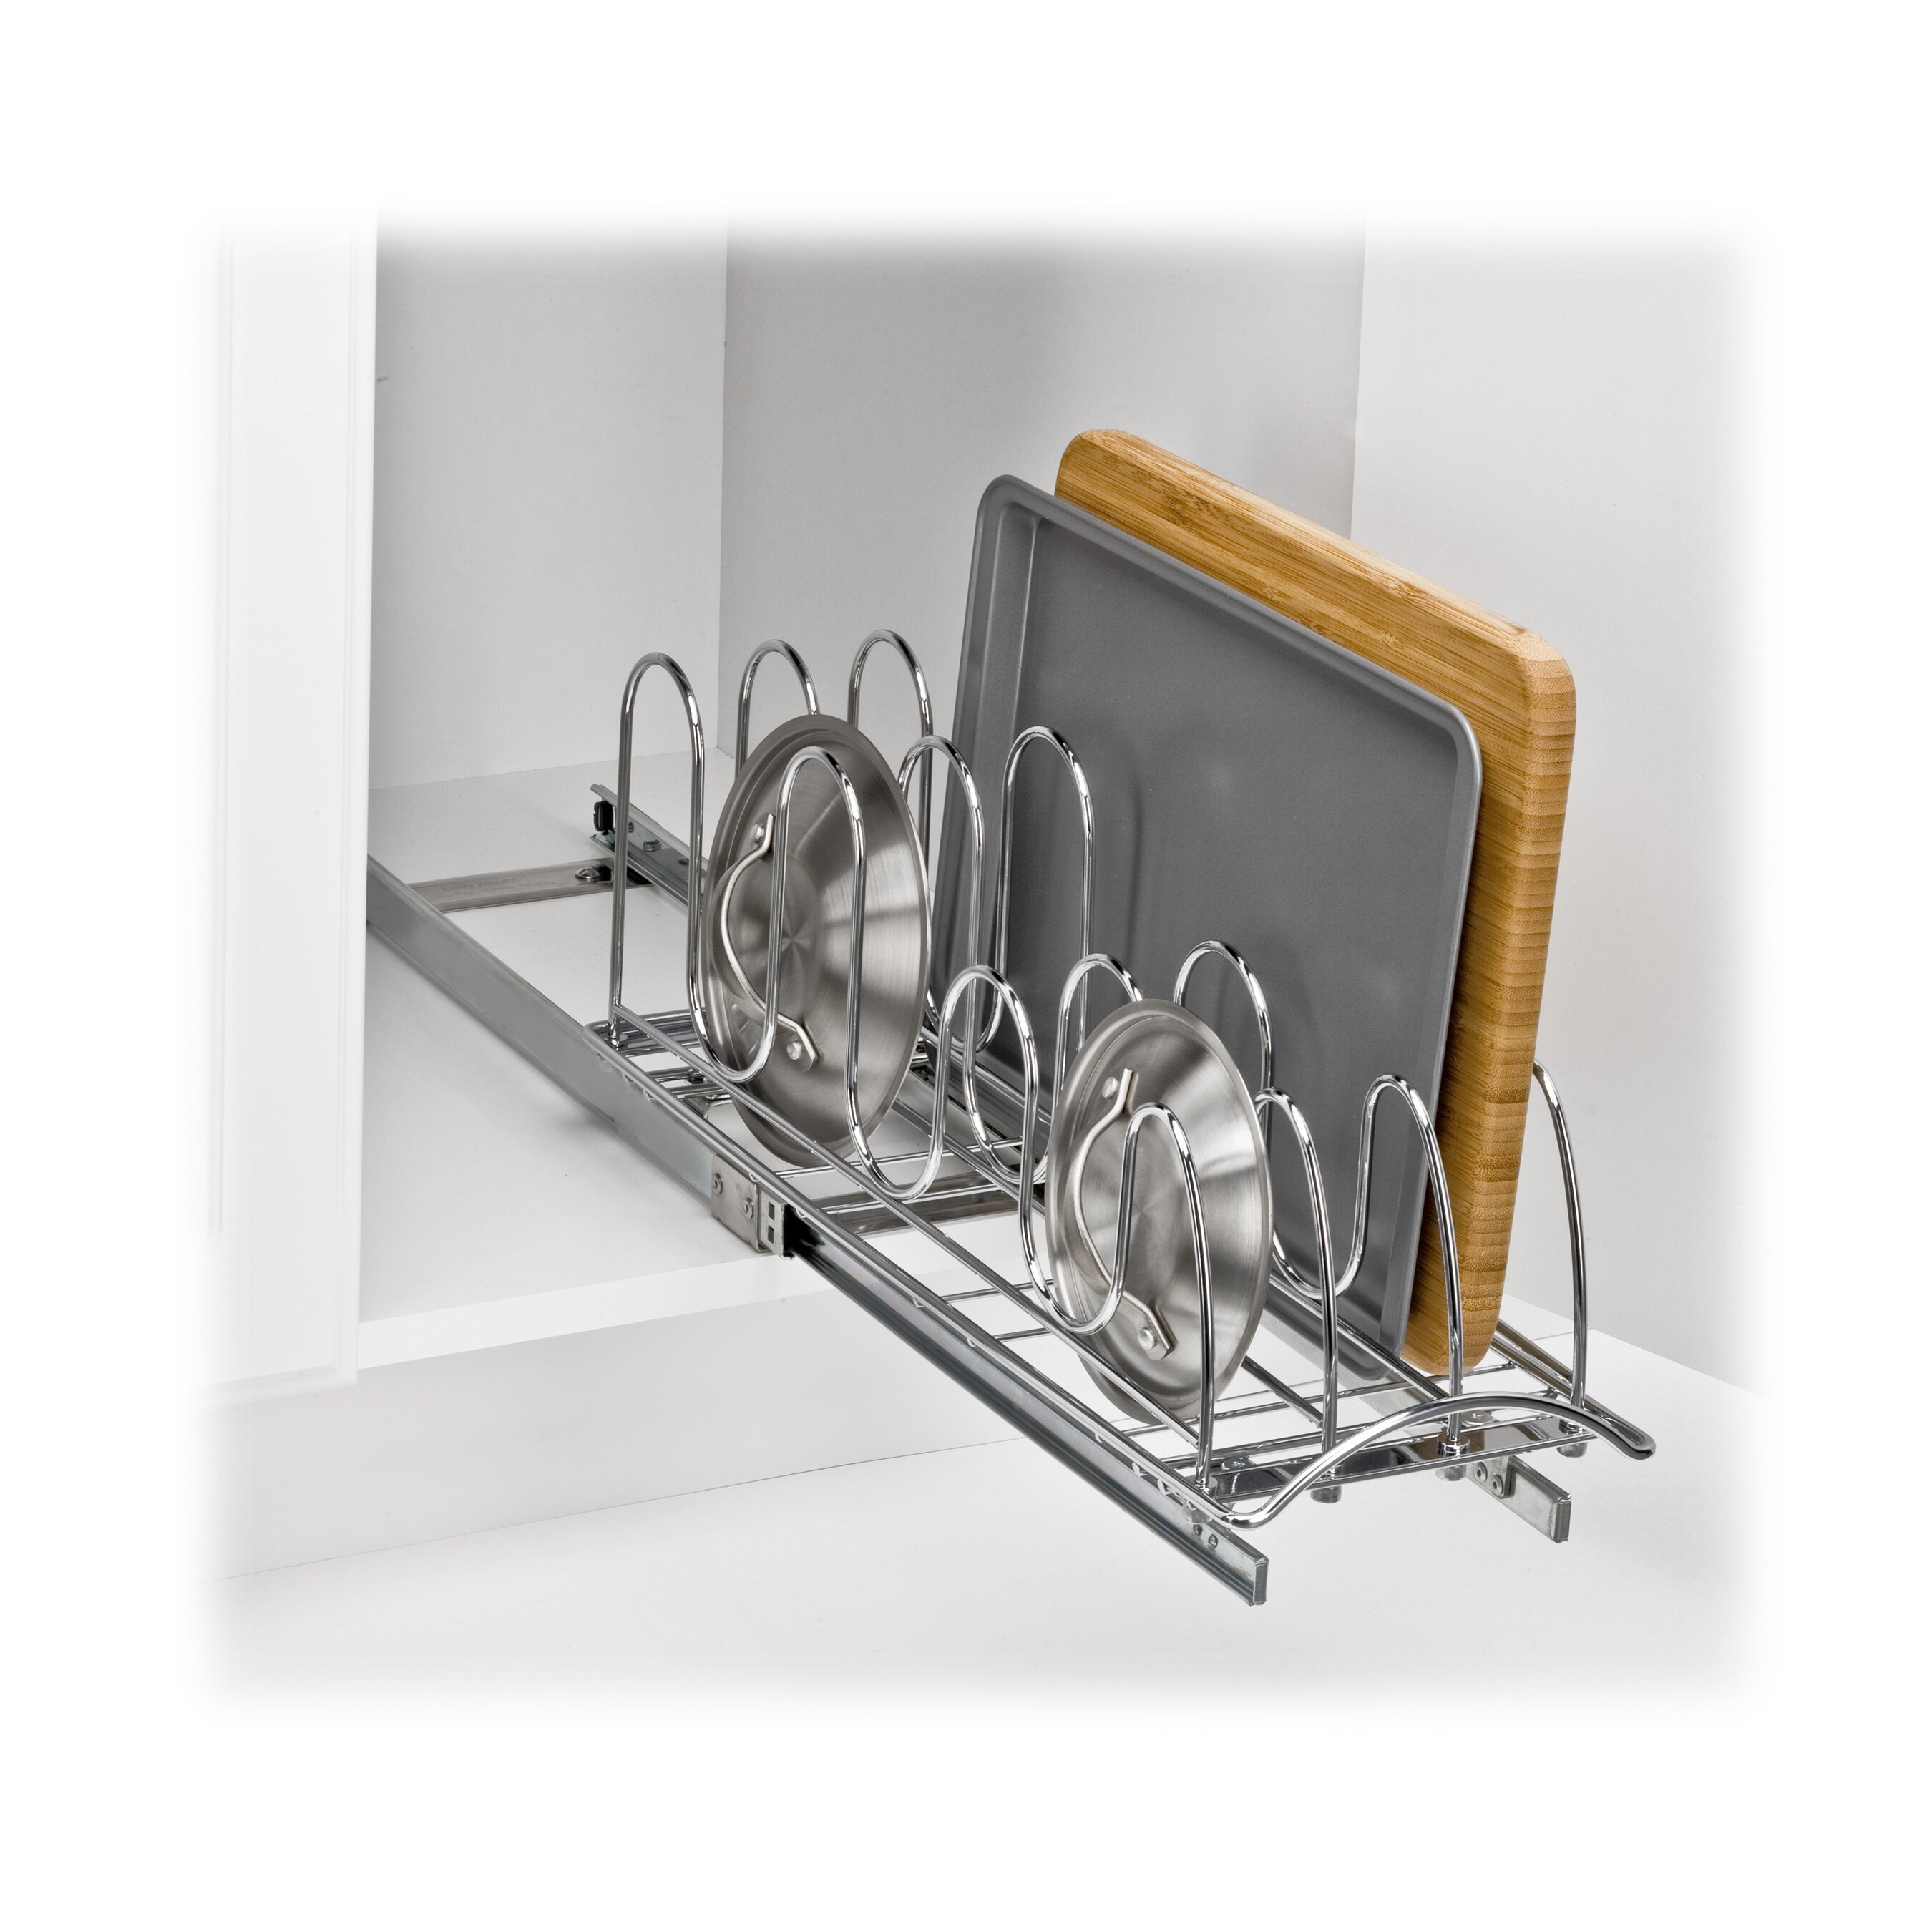 Lynk roll out pan lid holder pull out kitchen cabinet for 21 inch deep kitchen cabinets